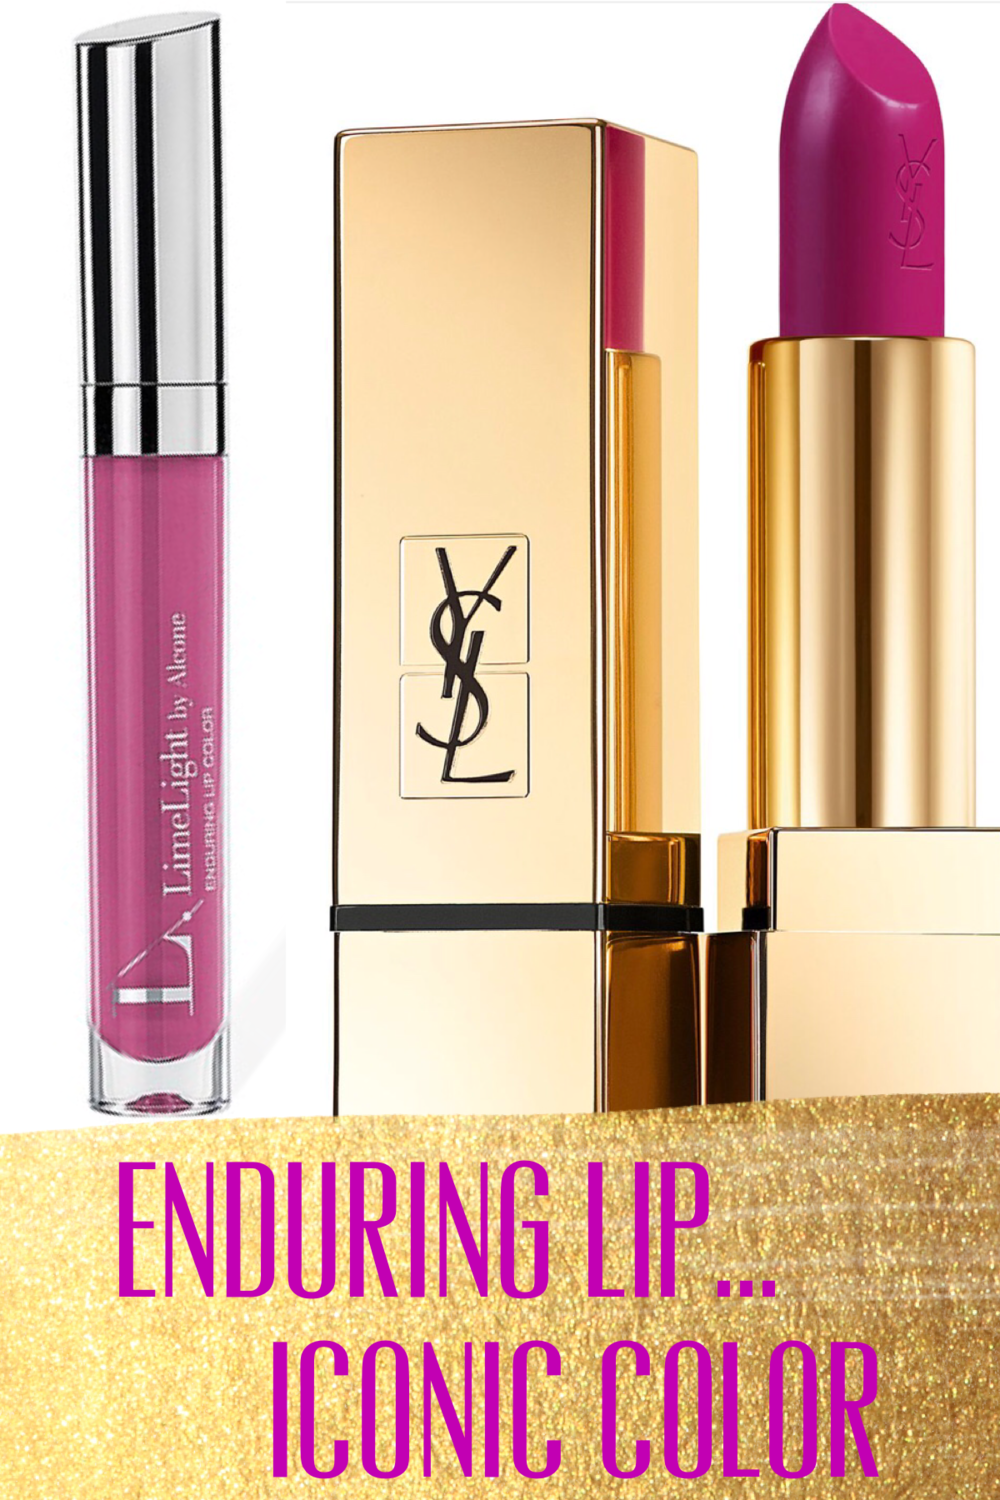 Limelight by Alcone Enduring Lip in Cake Pop ($20) & YSL No. 19 in Fuchsia Rouge Pur Couture ($37)